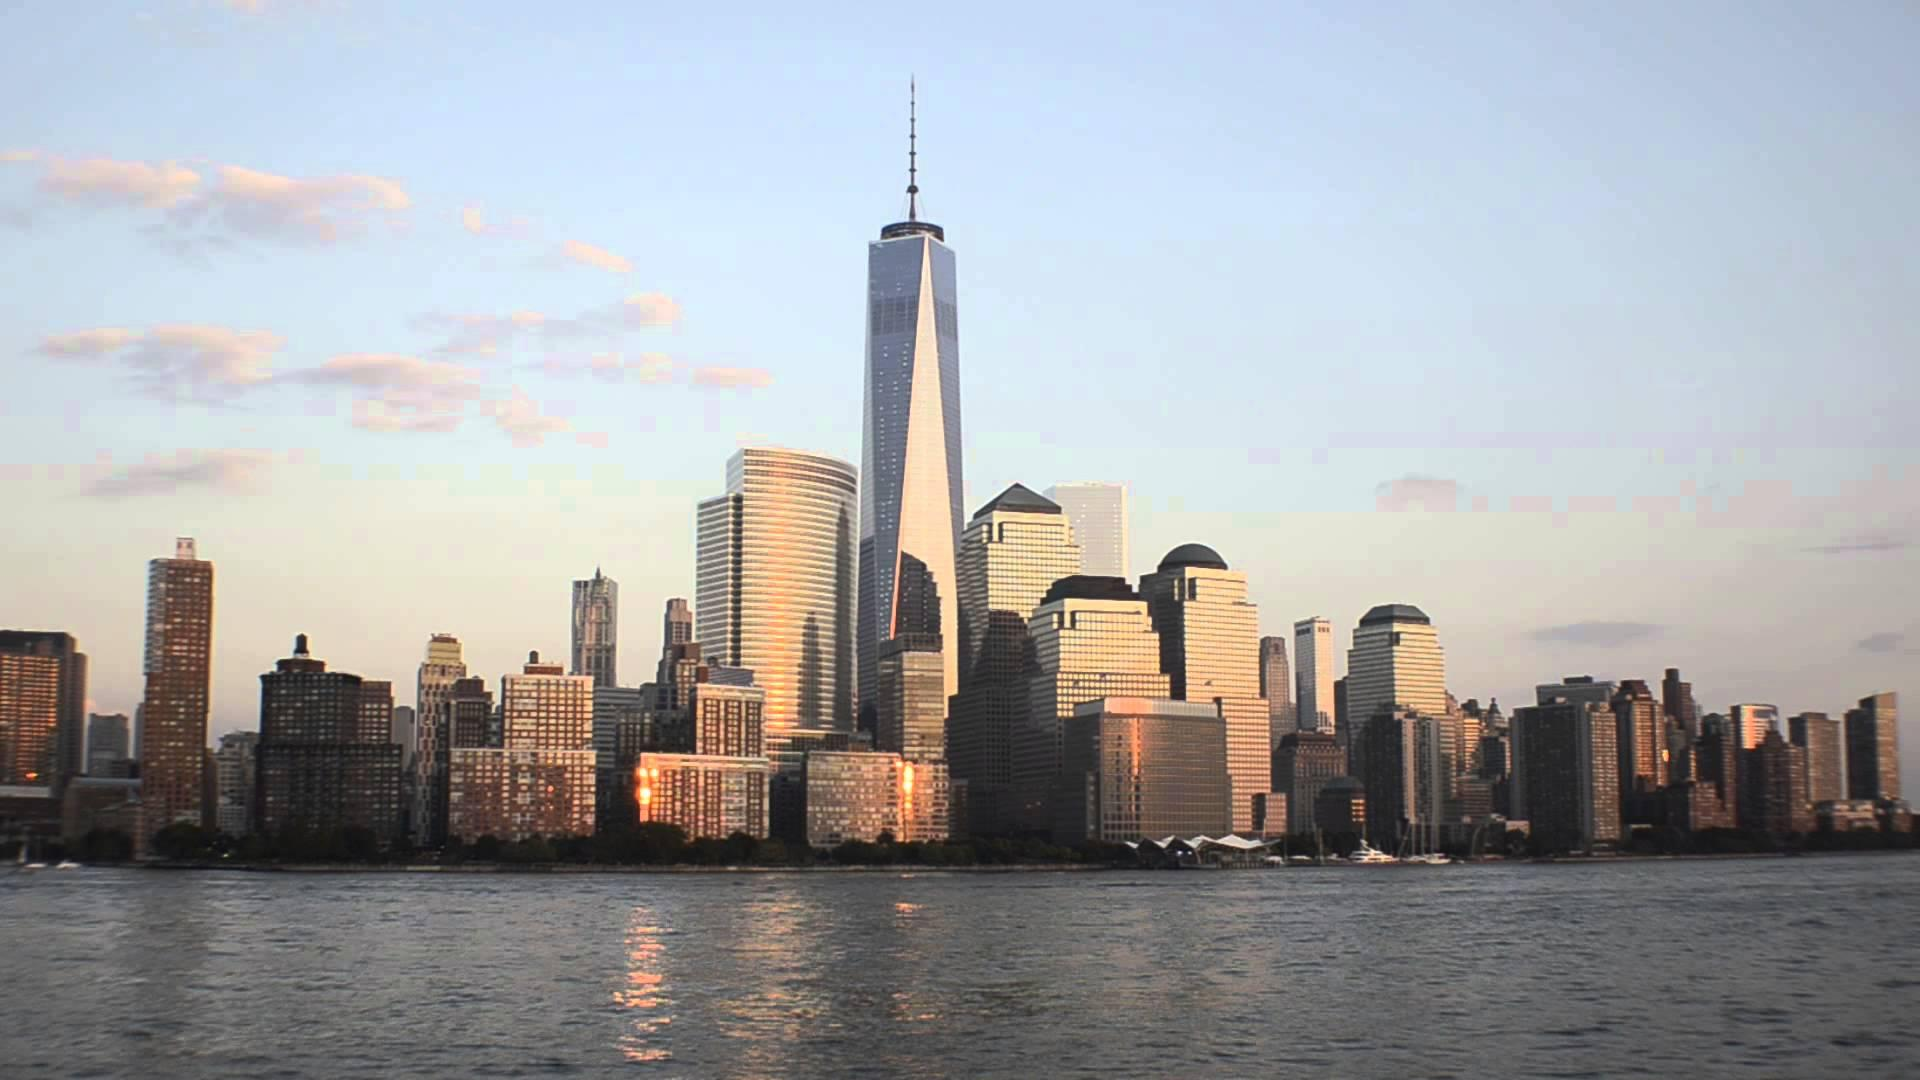 Stunning timelapse video shows One World Trade Center being built from the ground up in 2 minutes